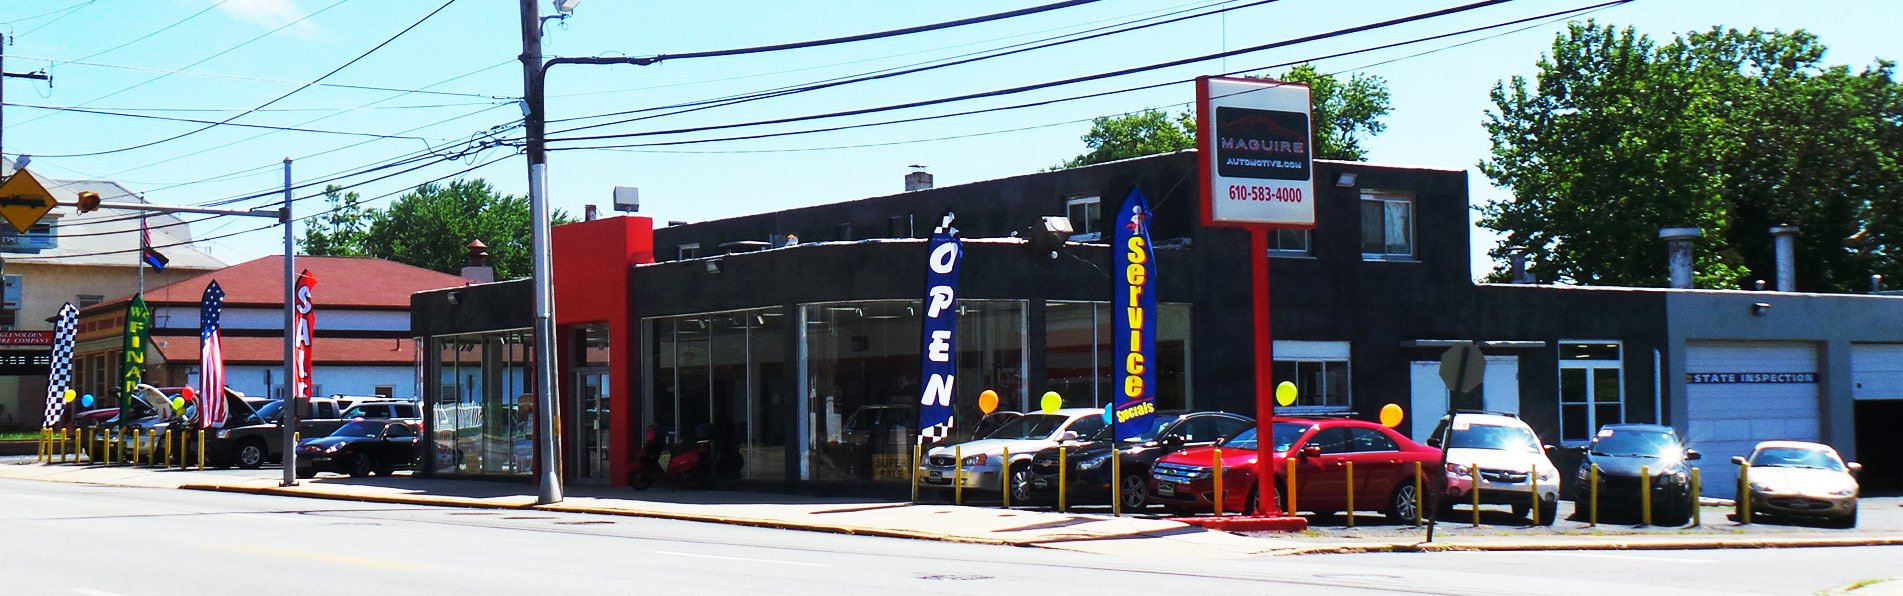 Used car dealer in Glenolden, Darby, Springfield, Lansdowne, PA ...